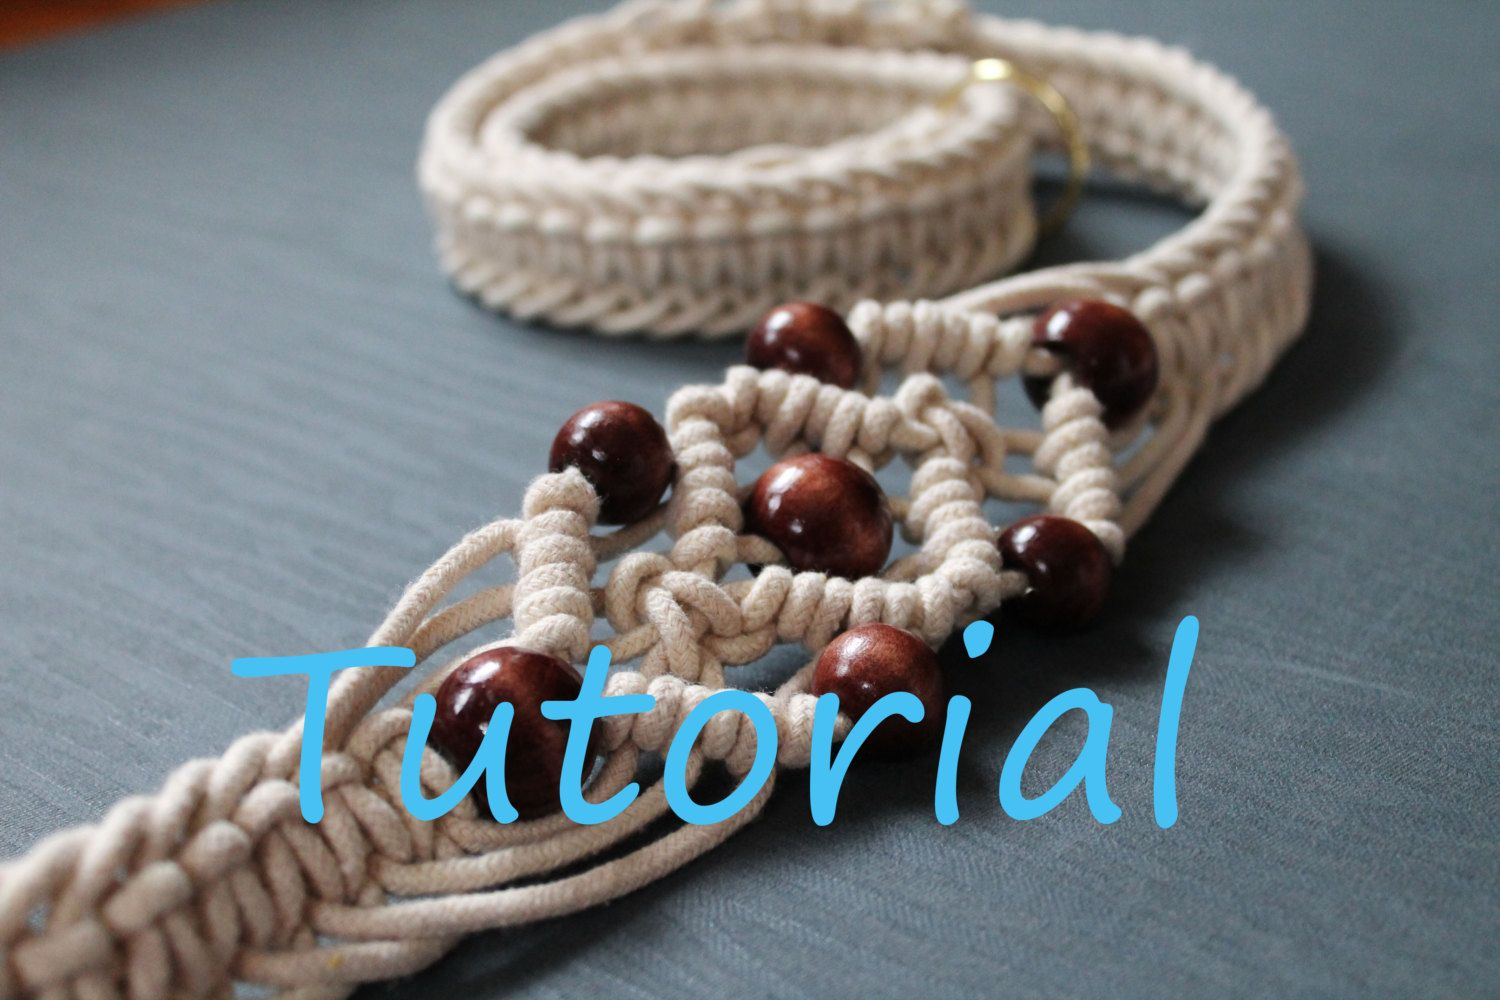 Tutorial For Macrame Yoga Mat Strap Diy Pattern Etsy Yoga Mat Strap Yoga Mat Bag Pattern Yoga Mat Carrier